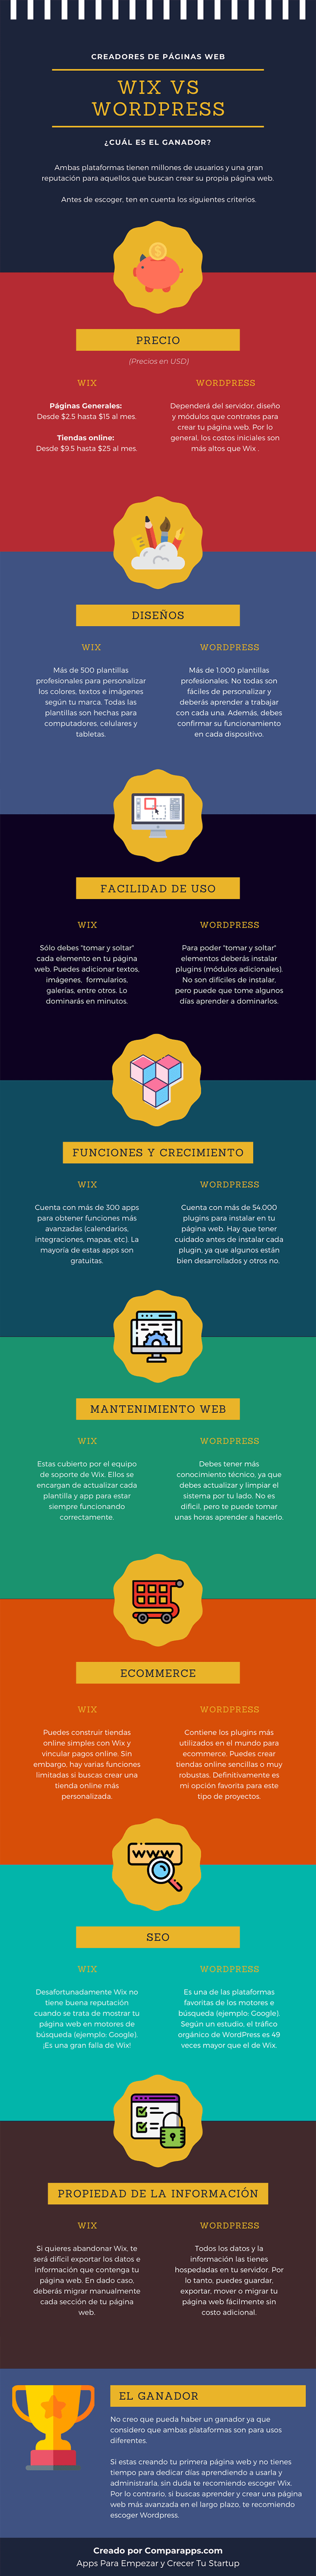 Infografia Wix Vs WordPress